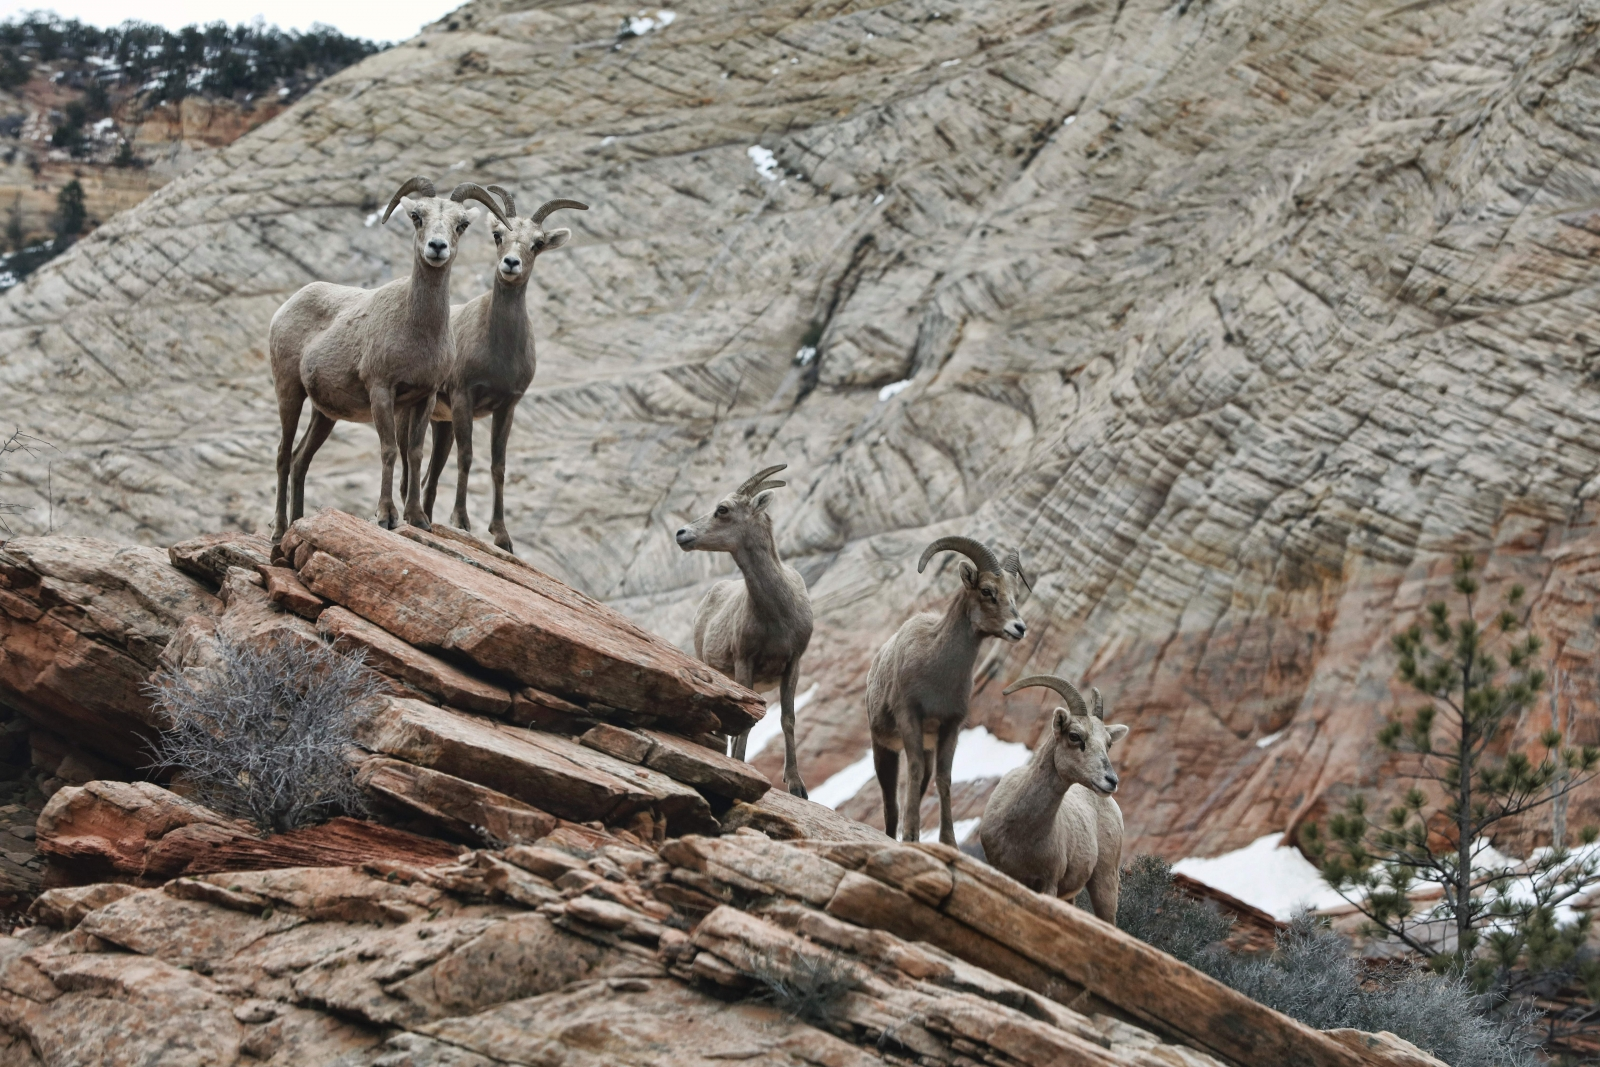 Bighorn sheep in Utah